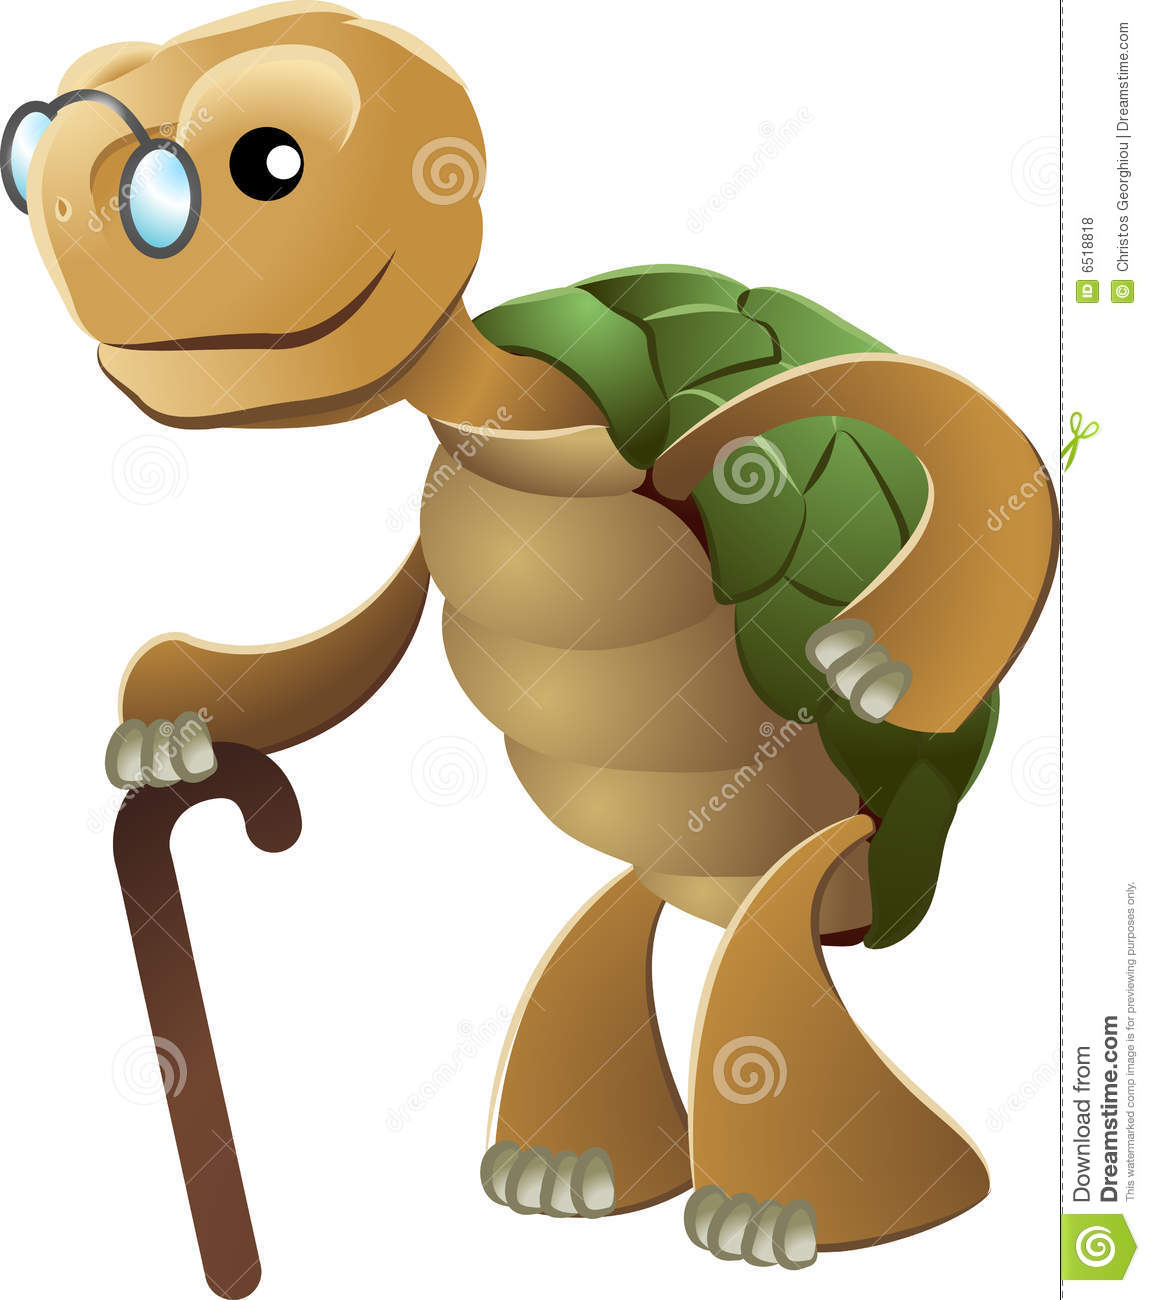 Clipart Of Elderly Tortoise Royalty Free Stock Photos - Image: 6518818